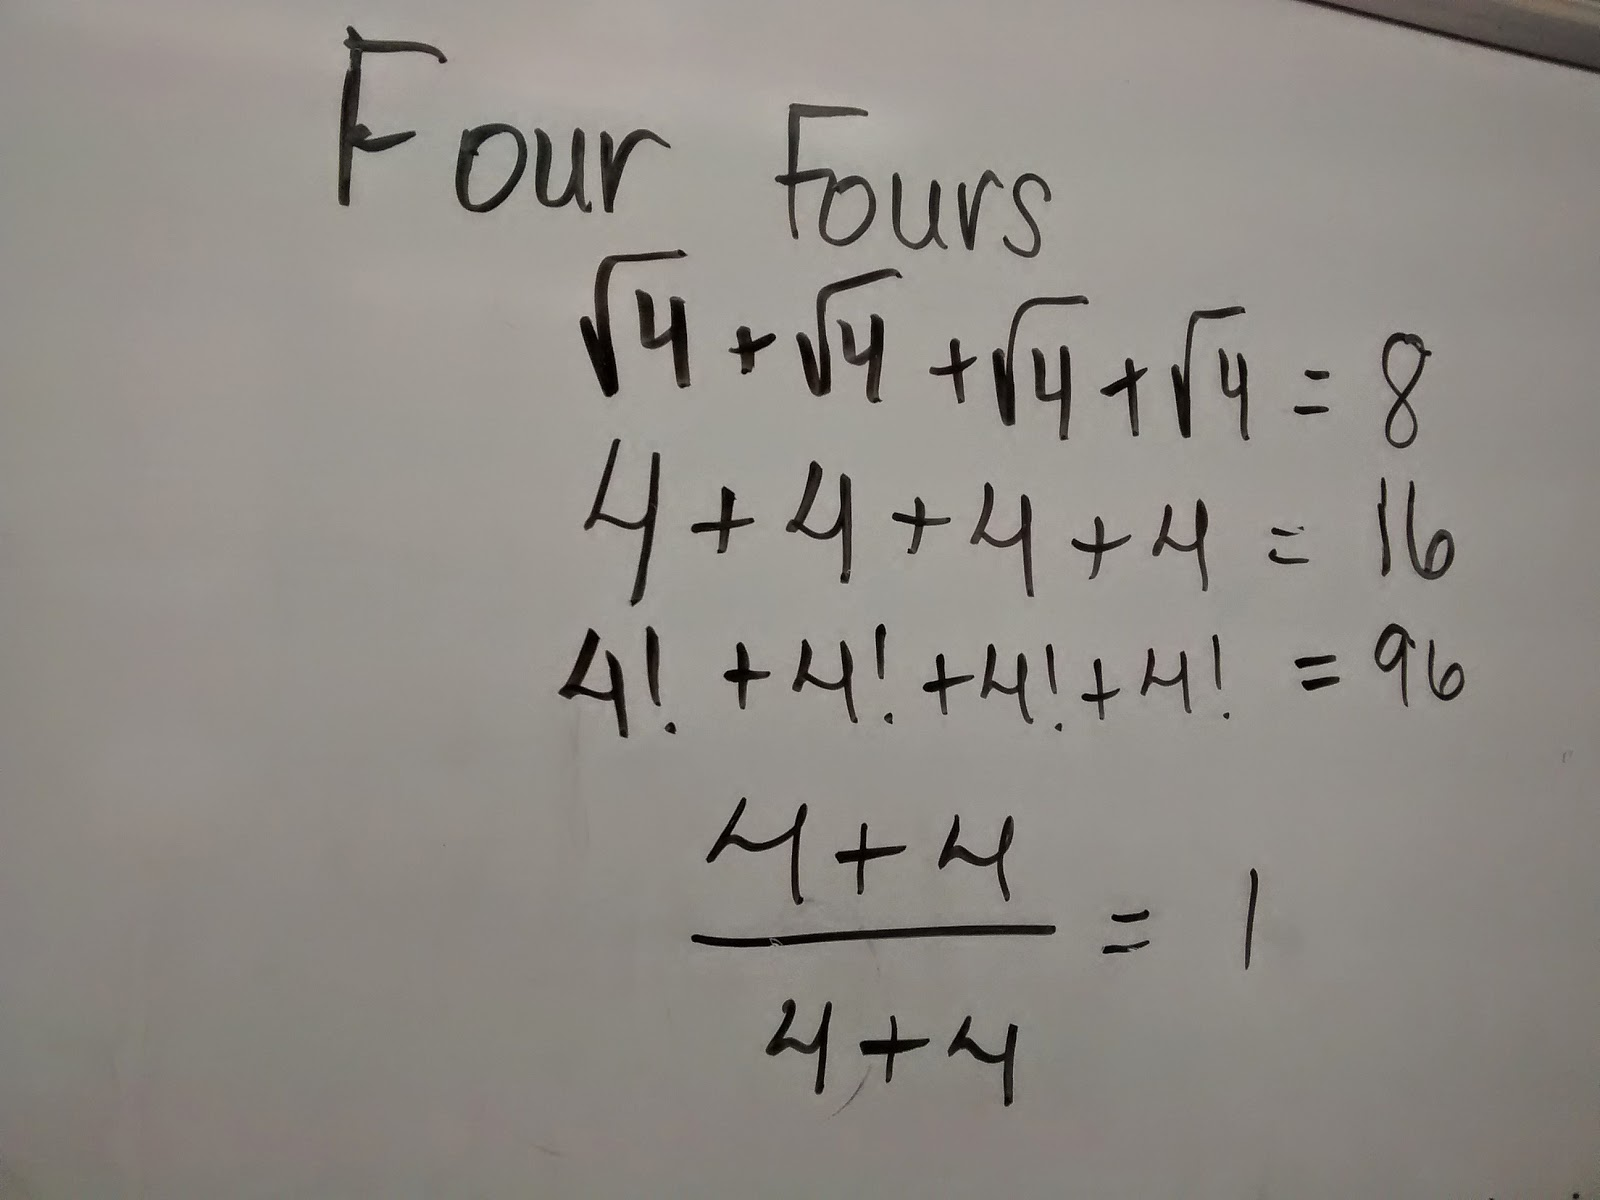 worksheet Factorials Worksheet math love four fours tons of fun my students had never been exposed to the idea factorials before so that was a mini lesson give ive used with students